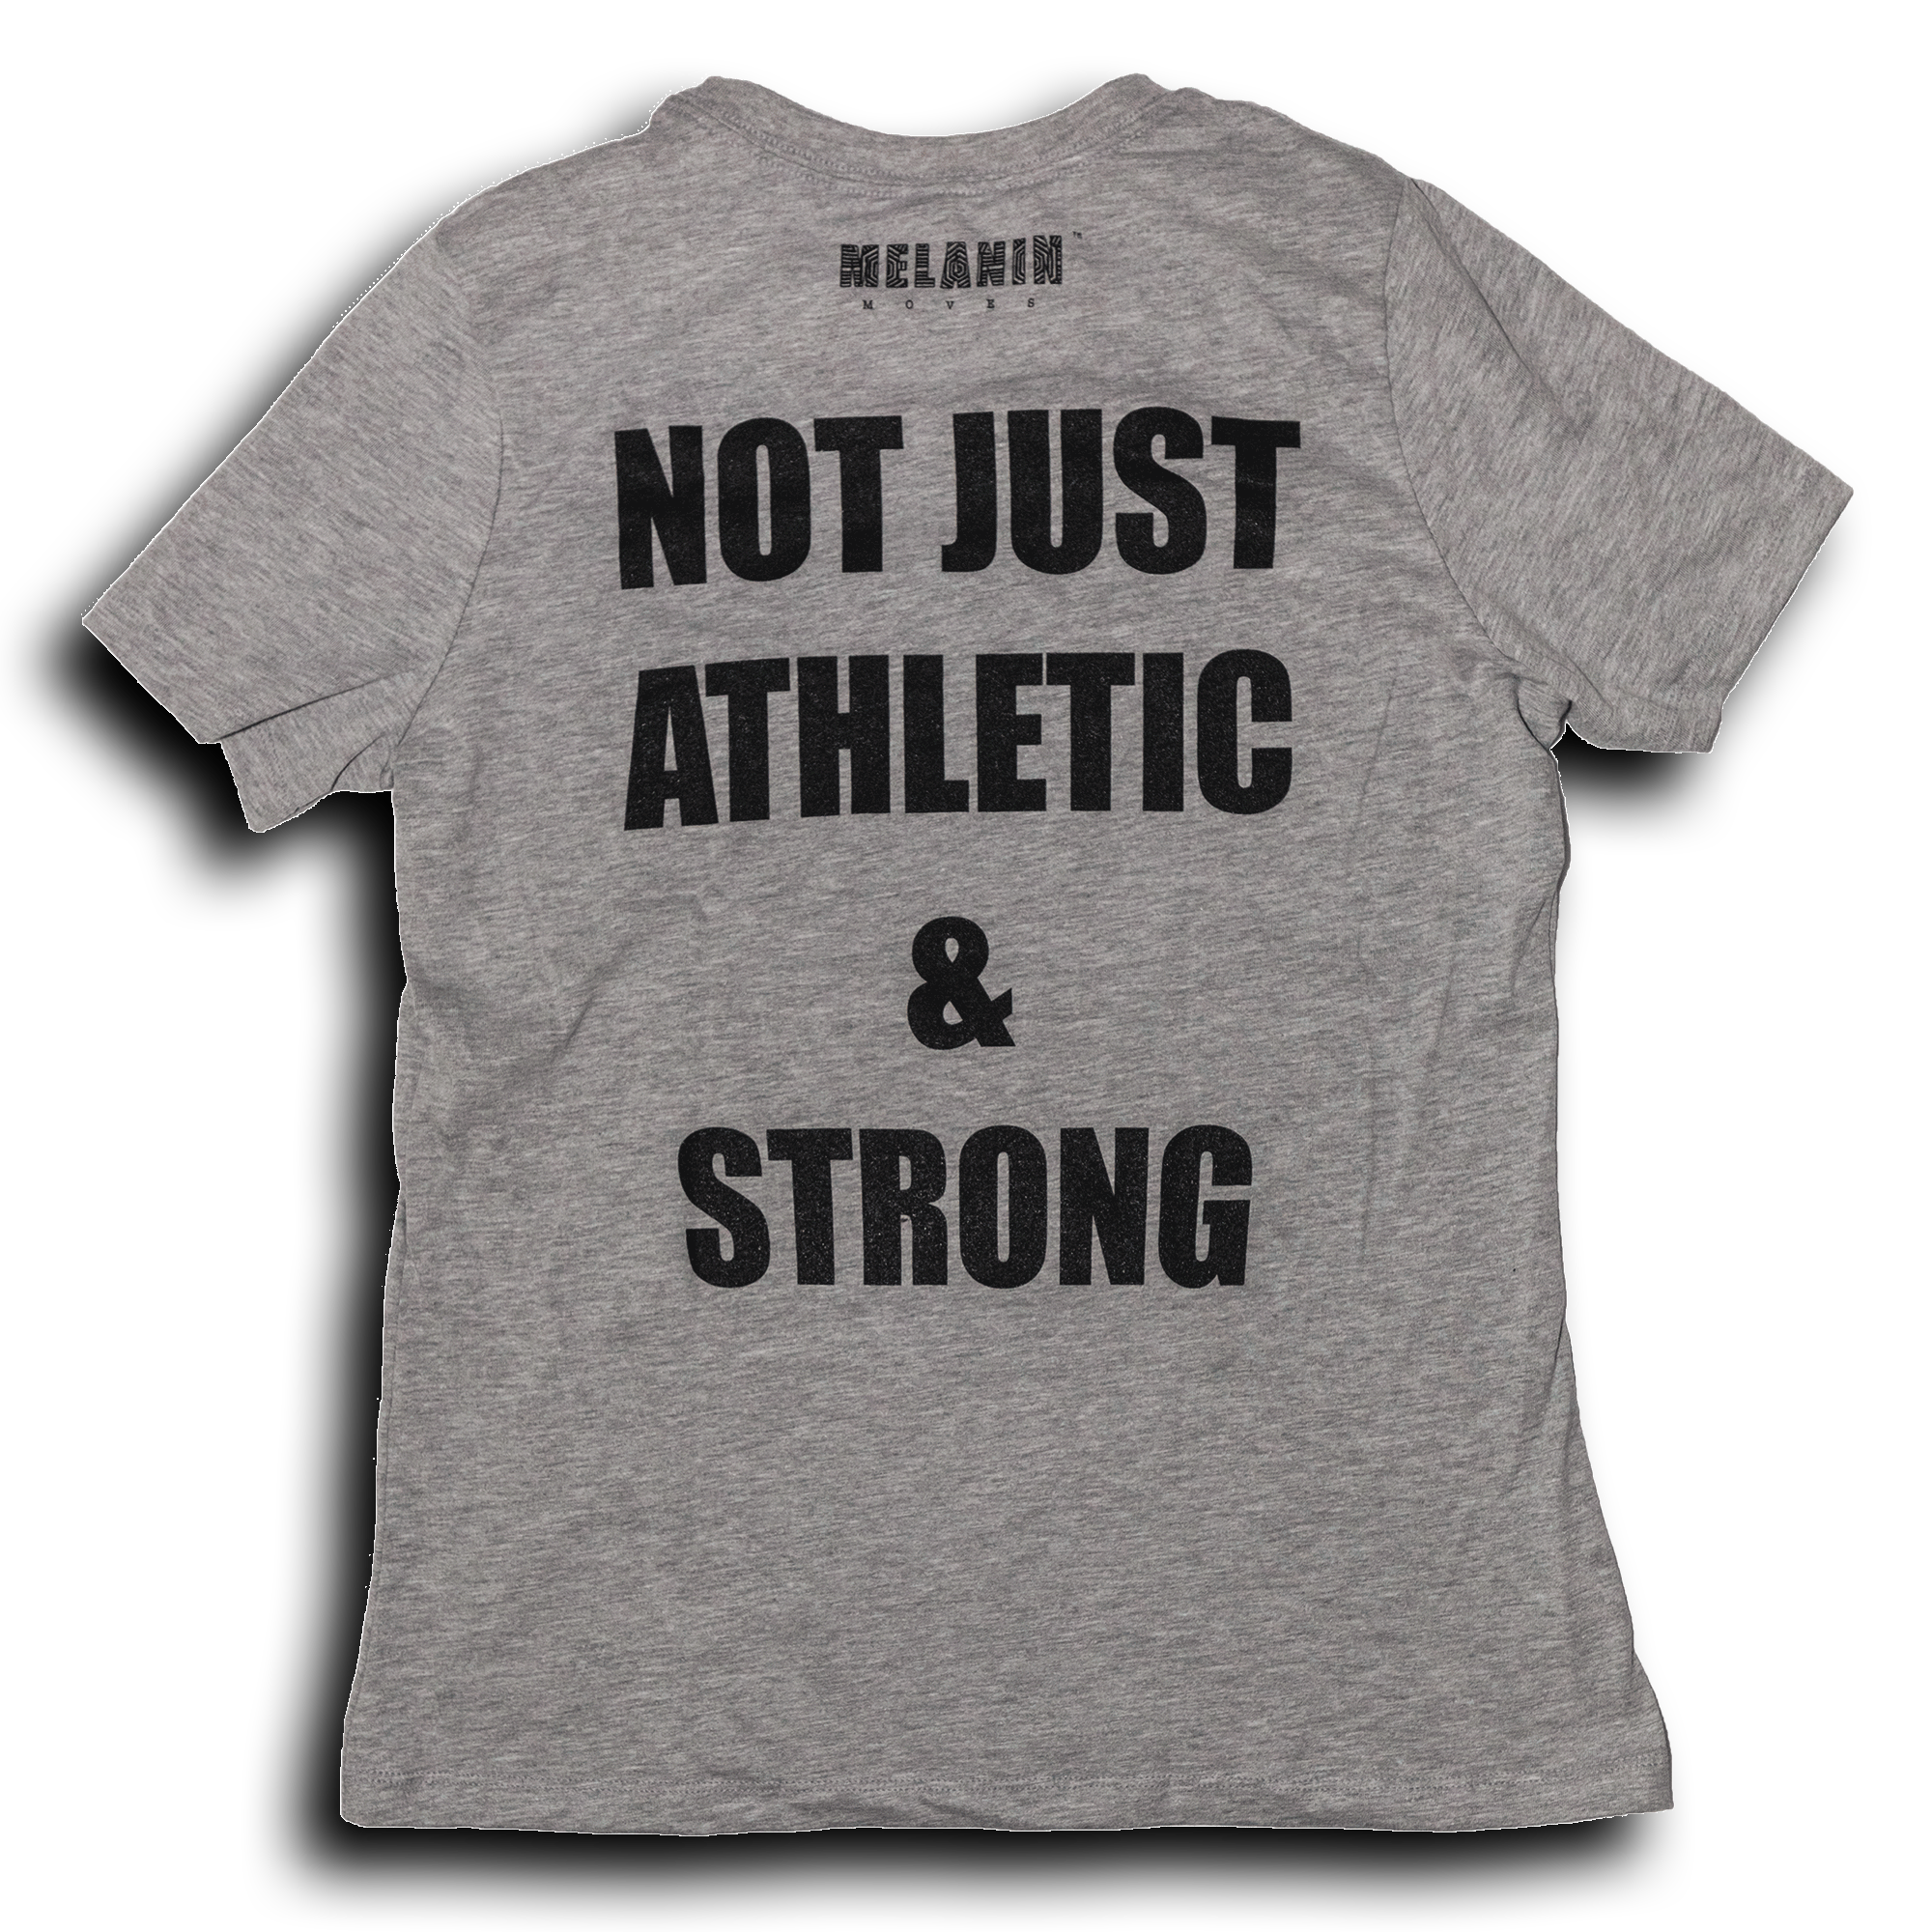 Not Just Athletic - grey shirt, very nice